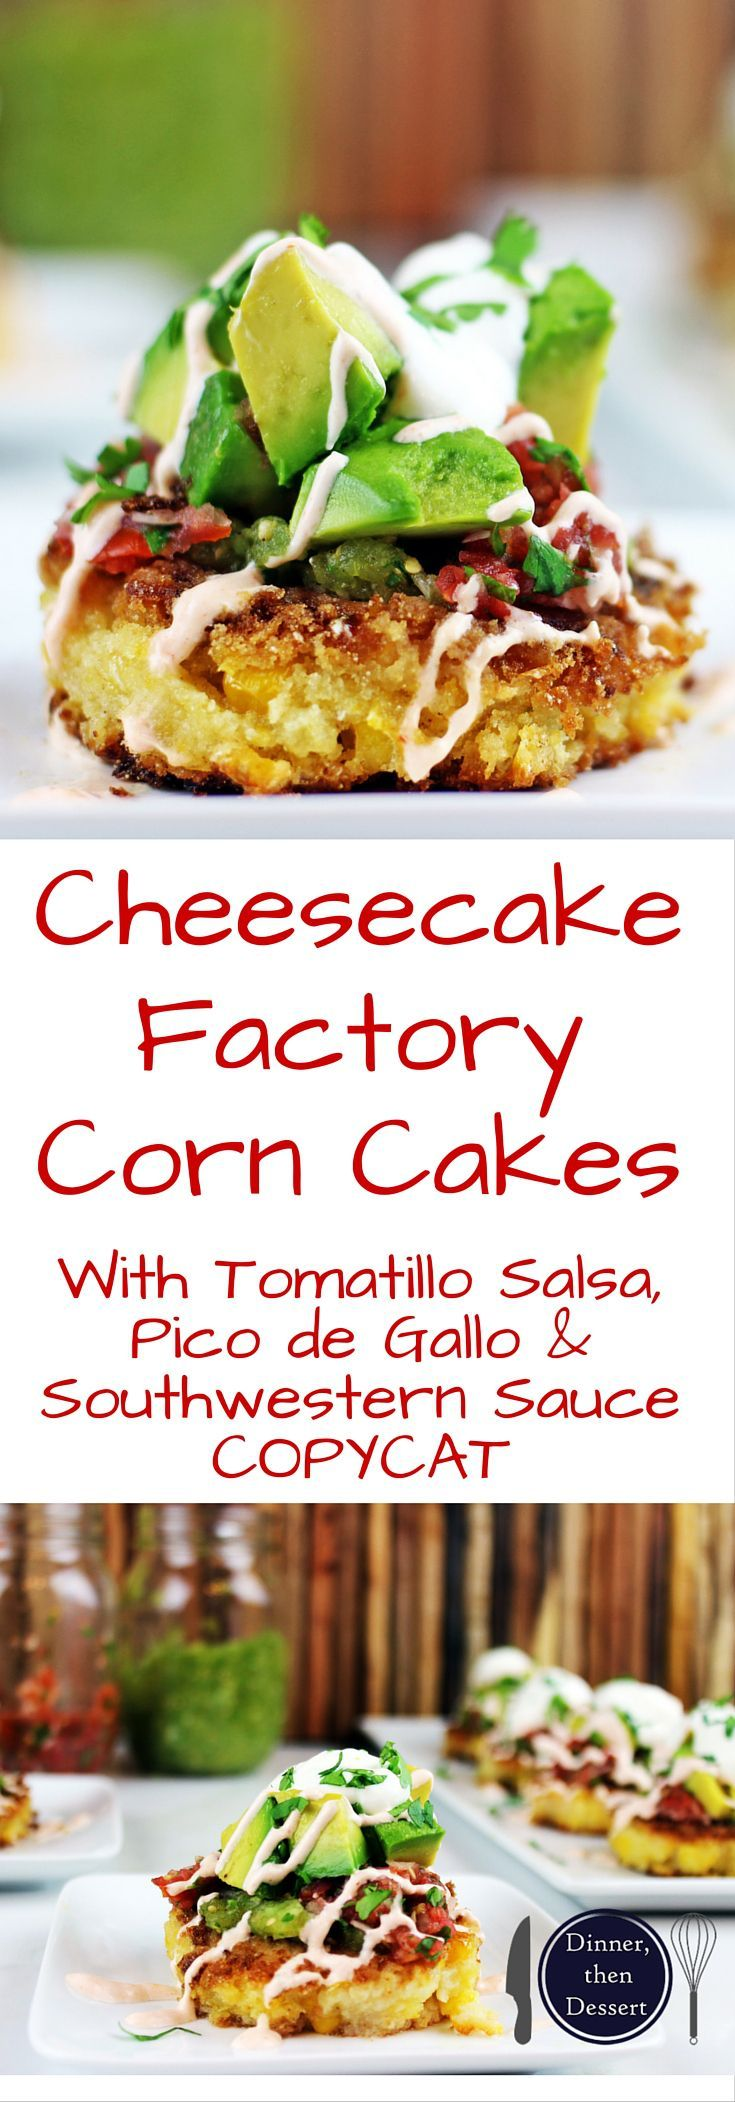 Tender, buttery corn cakes topped with tomatillo salsa, pico de gallo, southwestern sauce, avocadoes, cilantro and sour cream! A true Cheesecake Factory Favorite brought into your own kitchen!! Easy t (Small Baking Cheesecake)